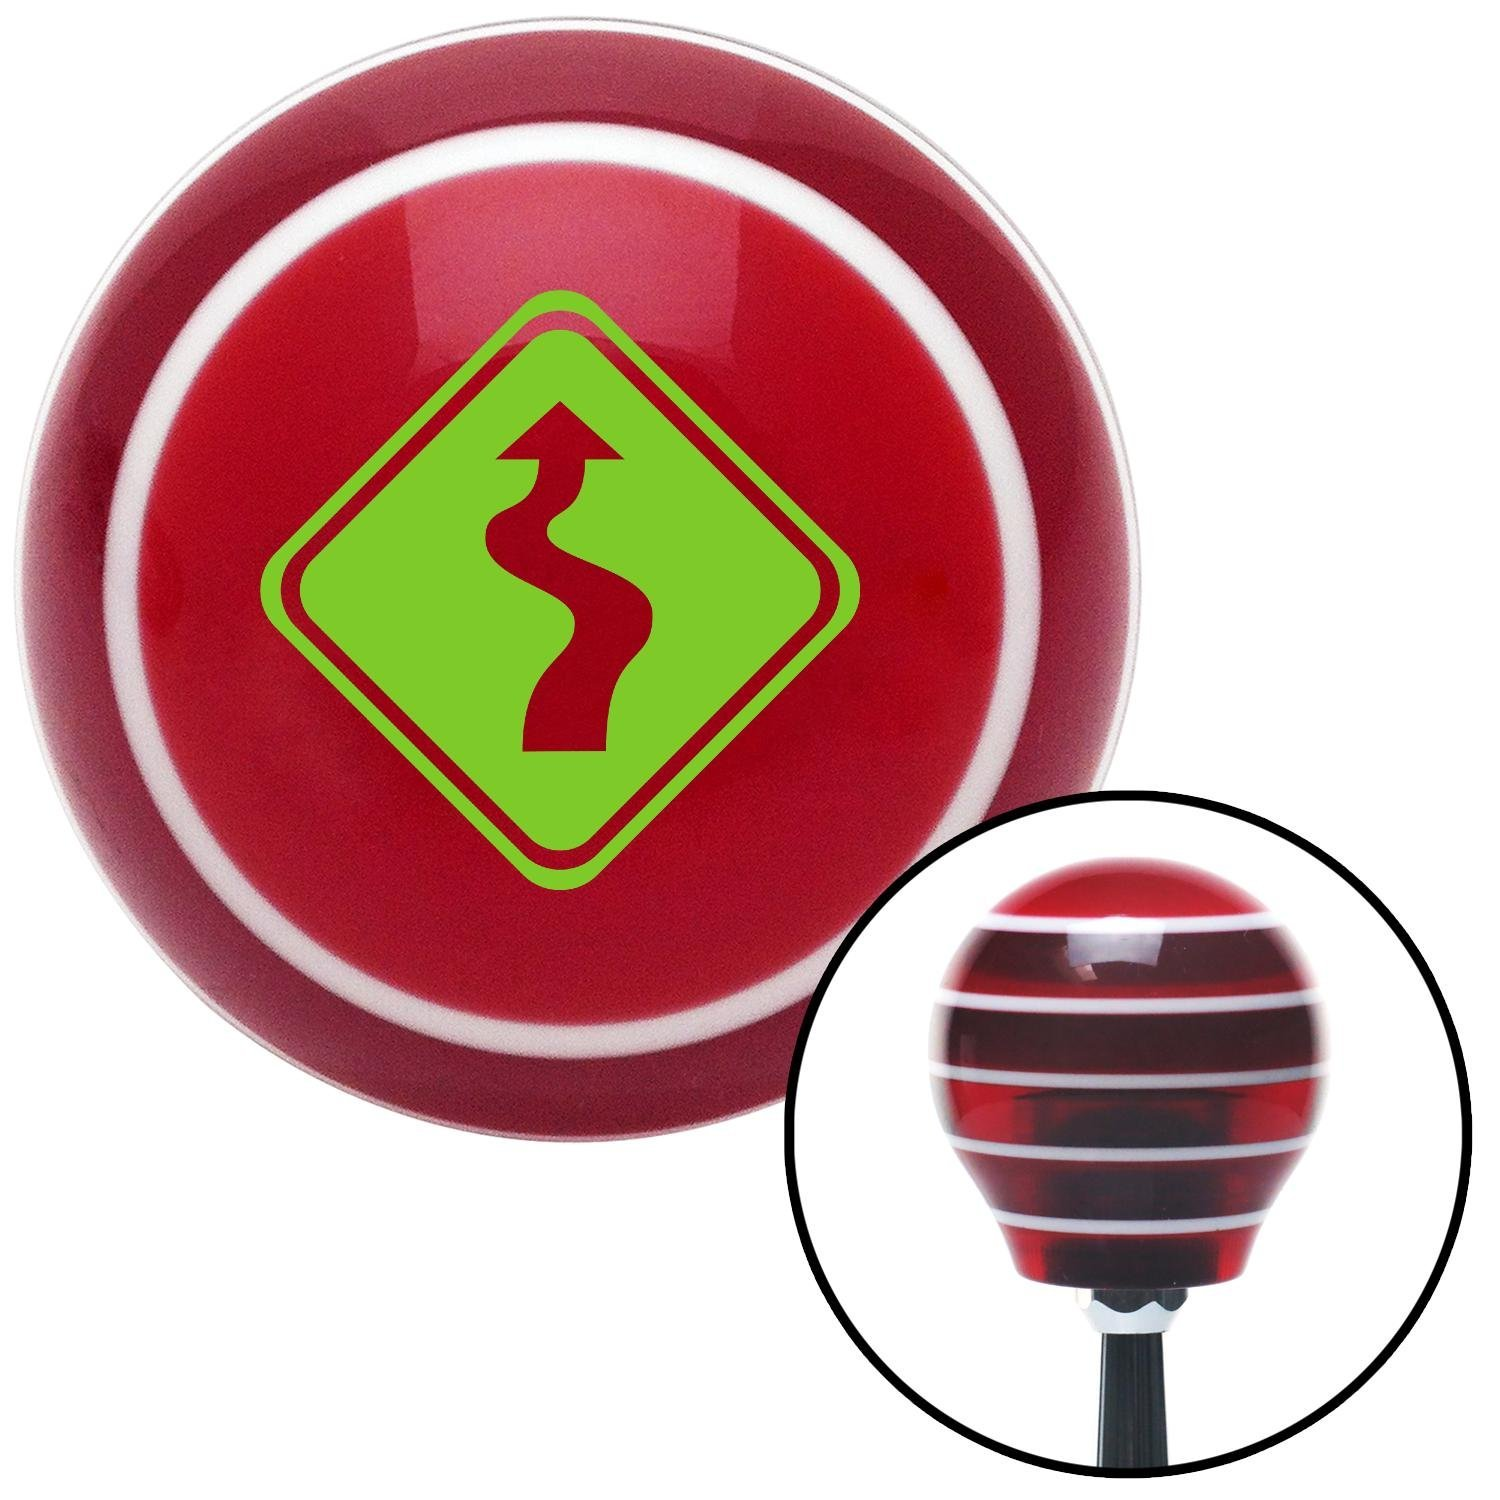 American Shifter 119236 Red Stripe Shift Knob with M16 x 1.5 Insert Green Curvy Road